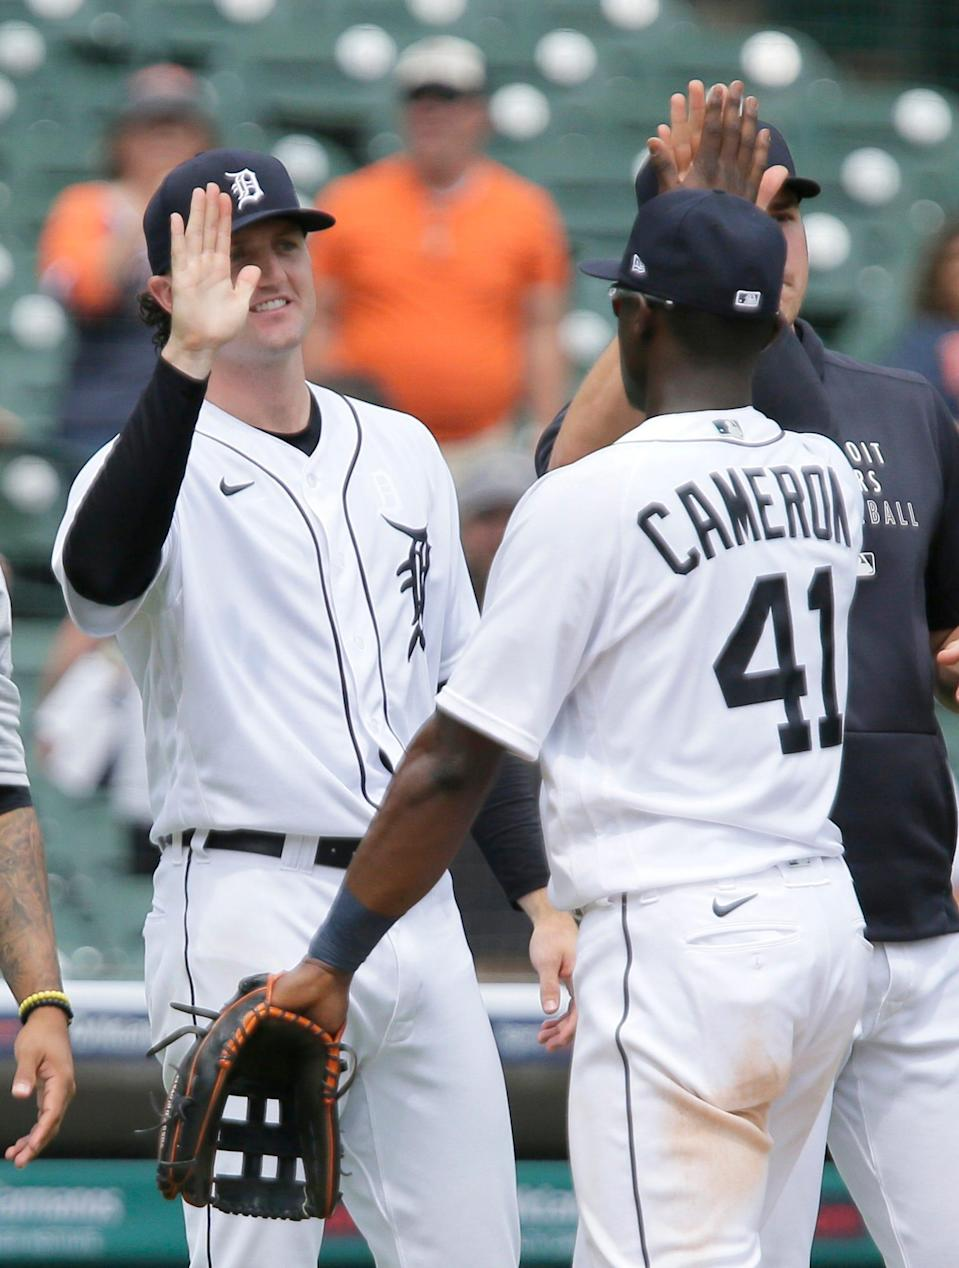 Detroit Tigers' Casey Mize, left, celebrates with Daz Cameron (41) after a win over the Houston Astros in the first baseball game of a doubleheader Saturday, June 26, 2021, in Detroit.